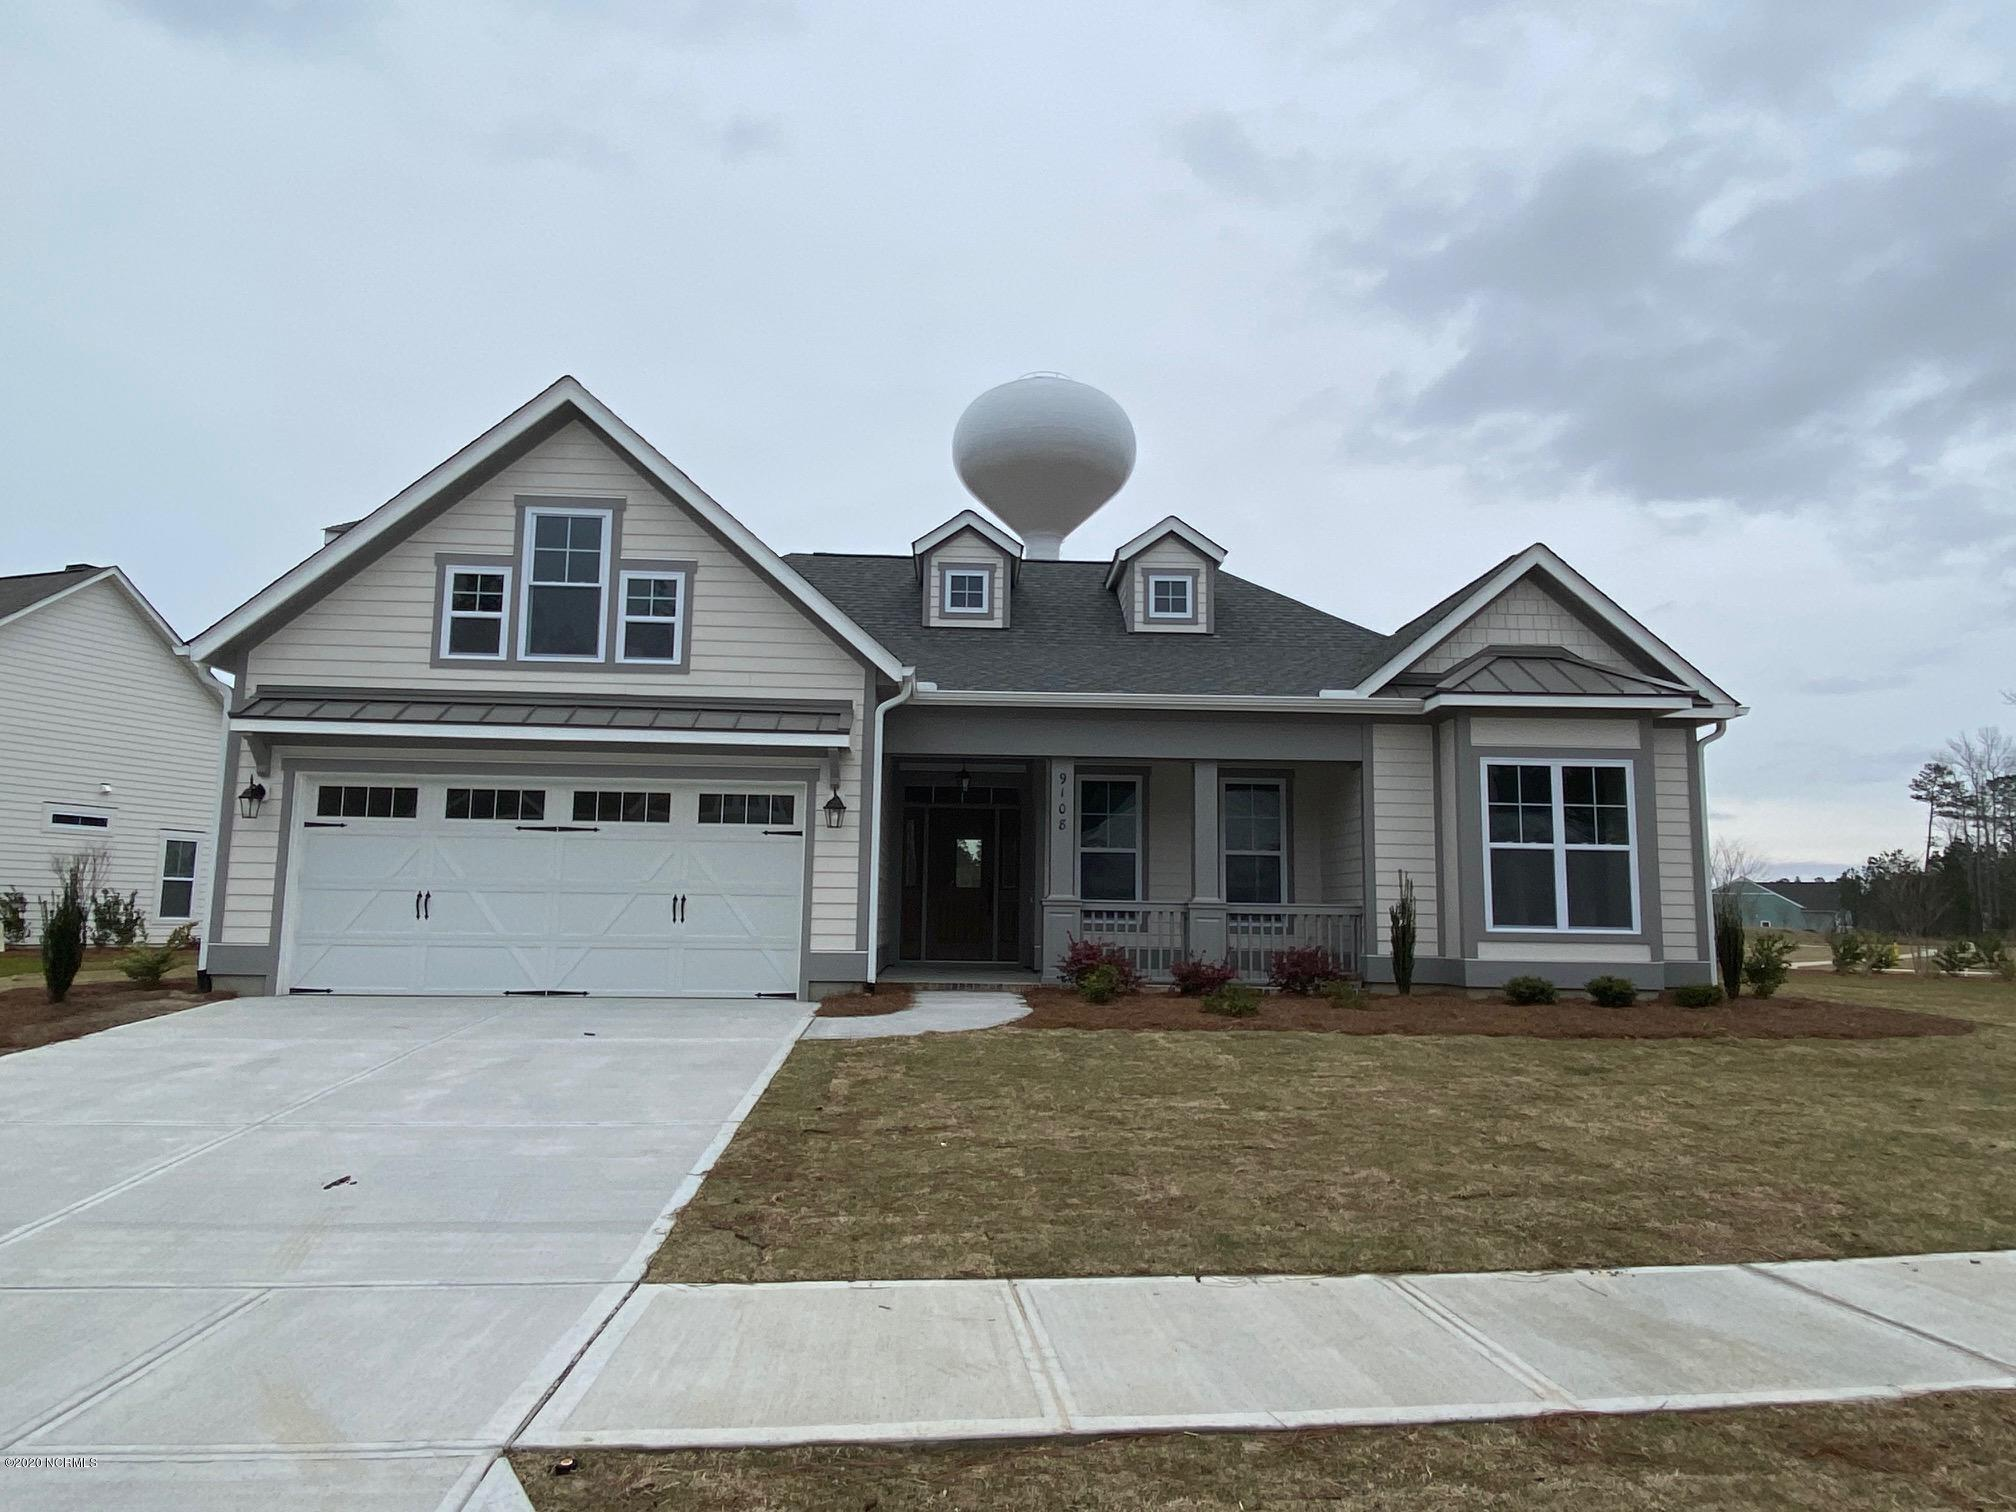 6108 River Breeze Way Leland, NC 28451